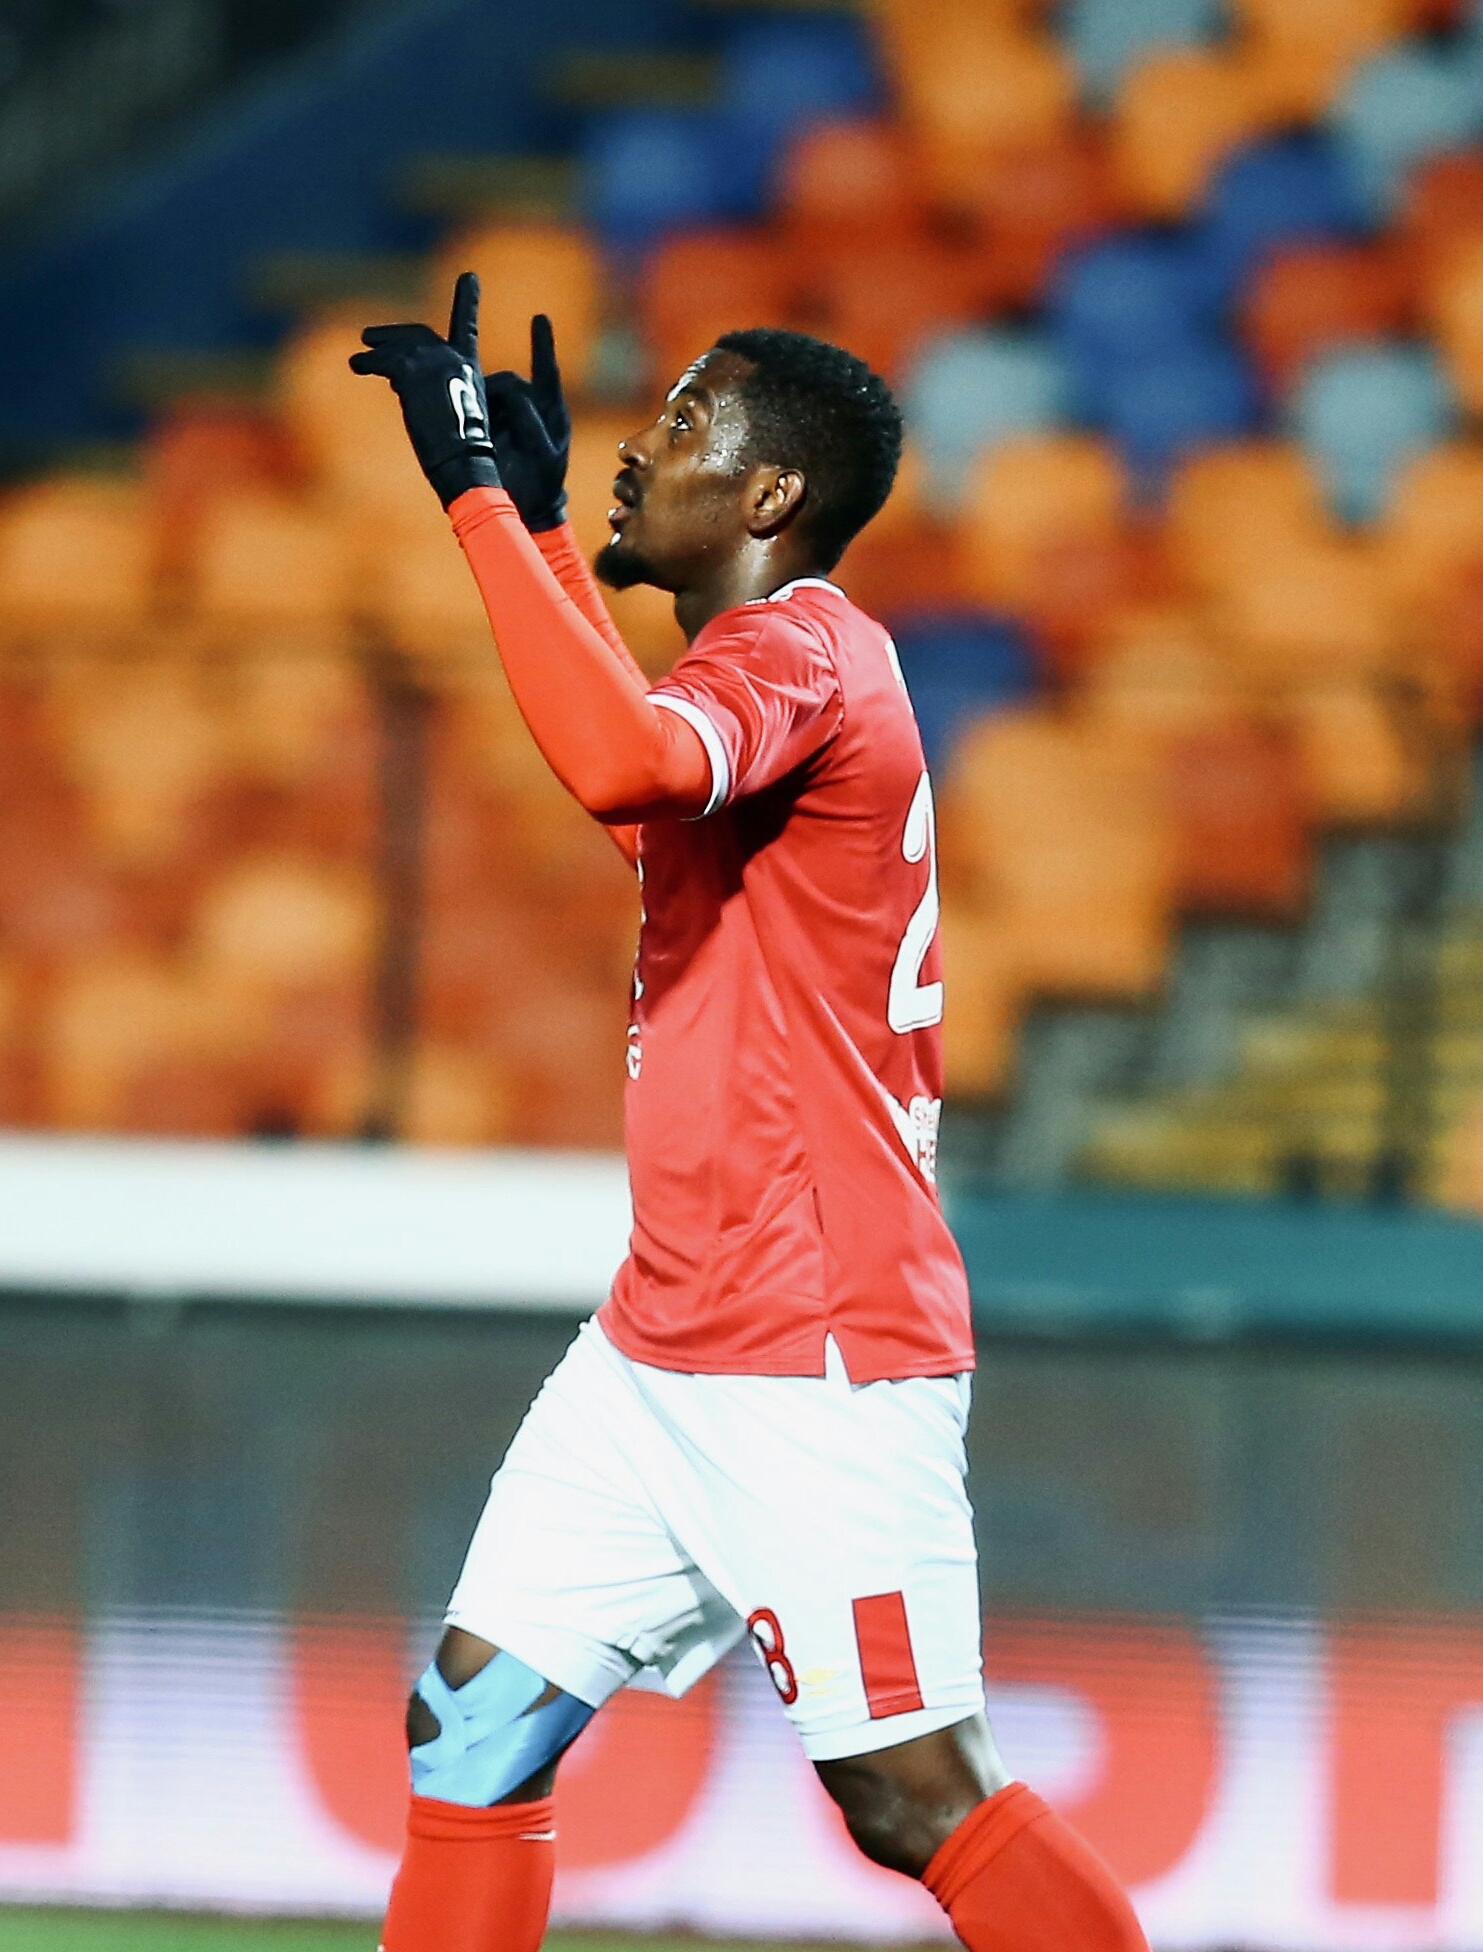 Ajayi On Target As Ahly Win; Extend Lead At The Top